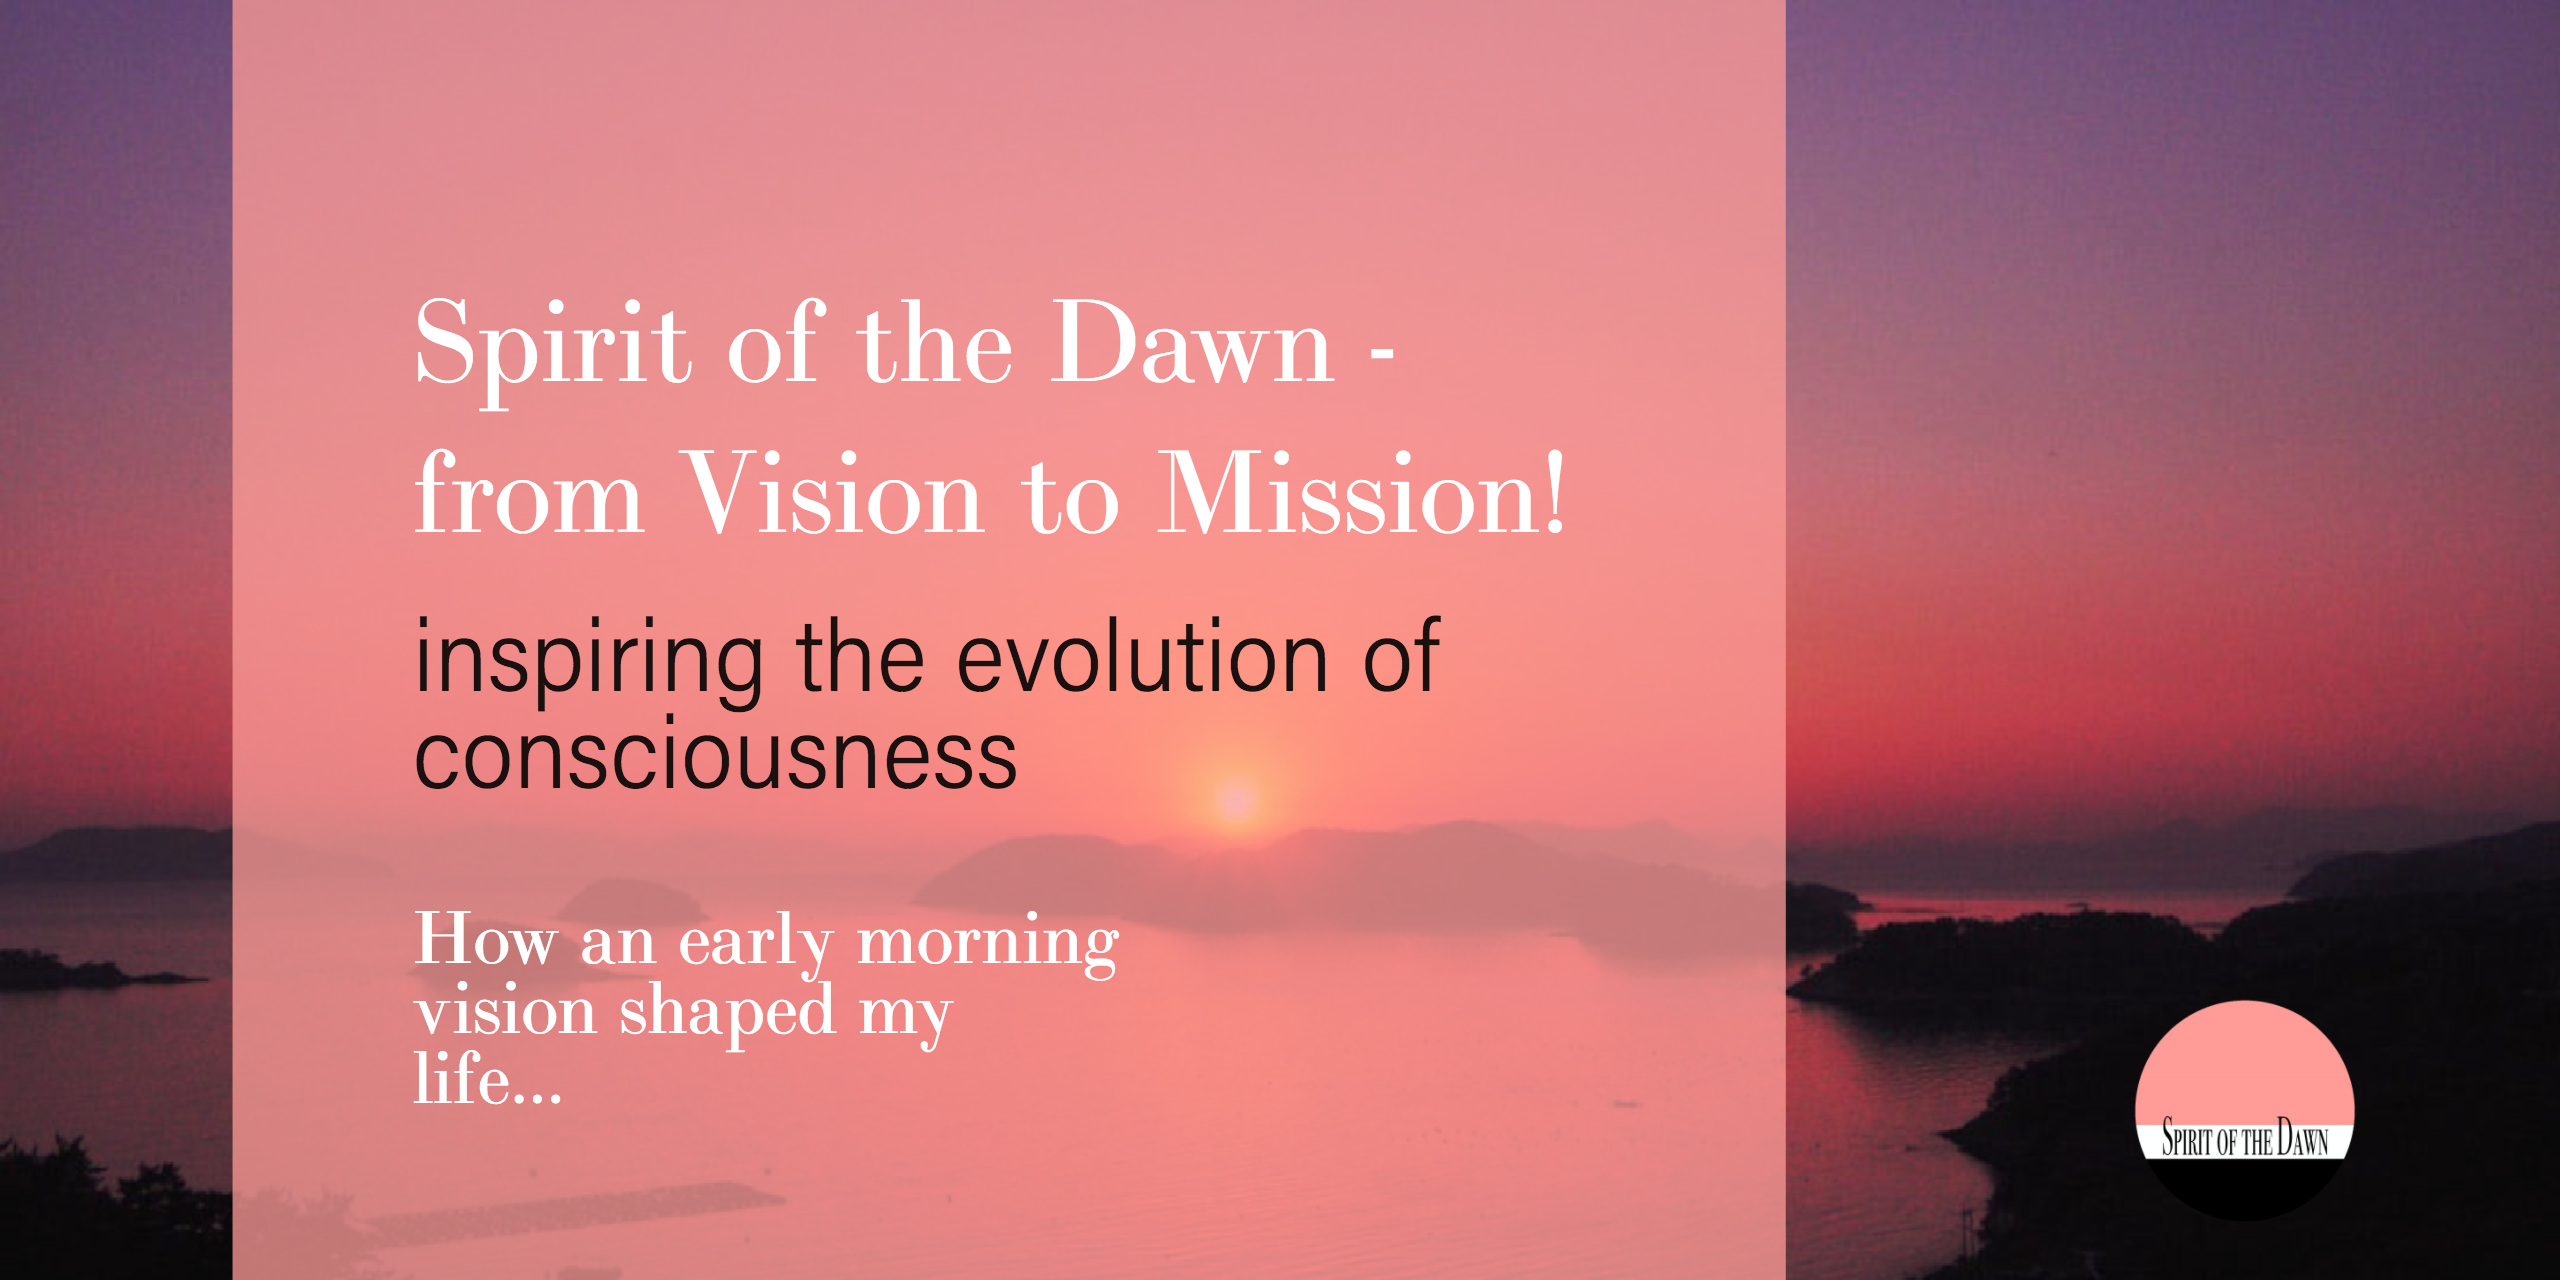 Spirit of the Dawn - from Vision to Mission!